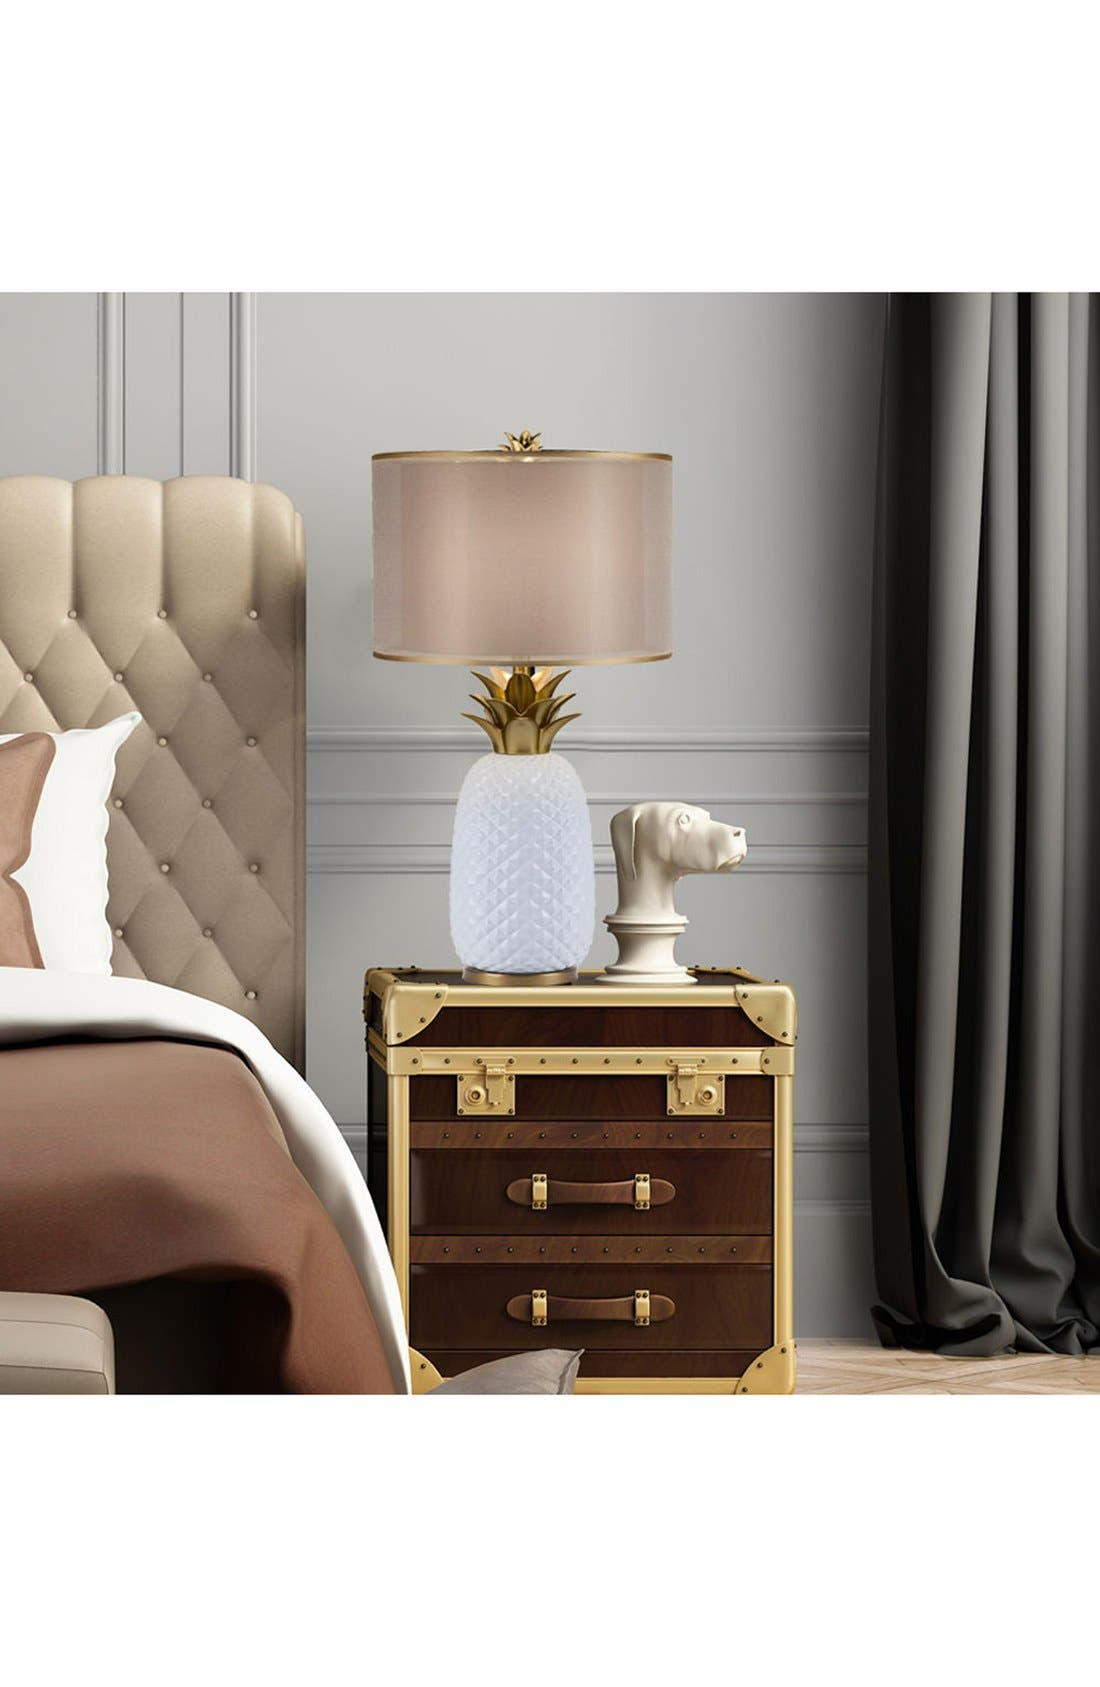 JAlexander Pineapple Lamp,                             Alternate thumbnail 2, color,                             White